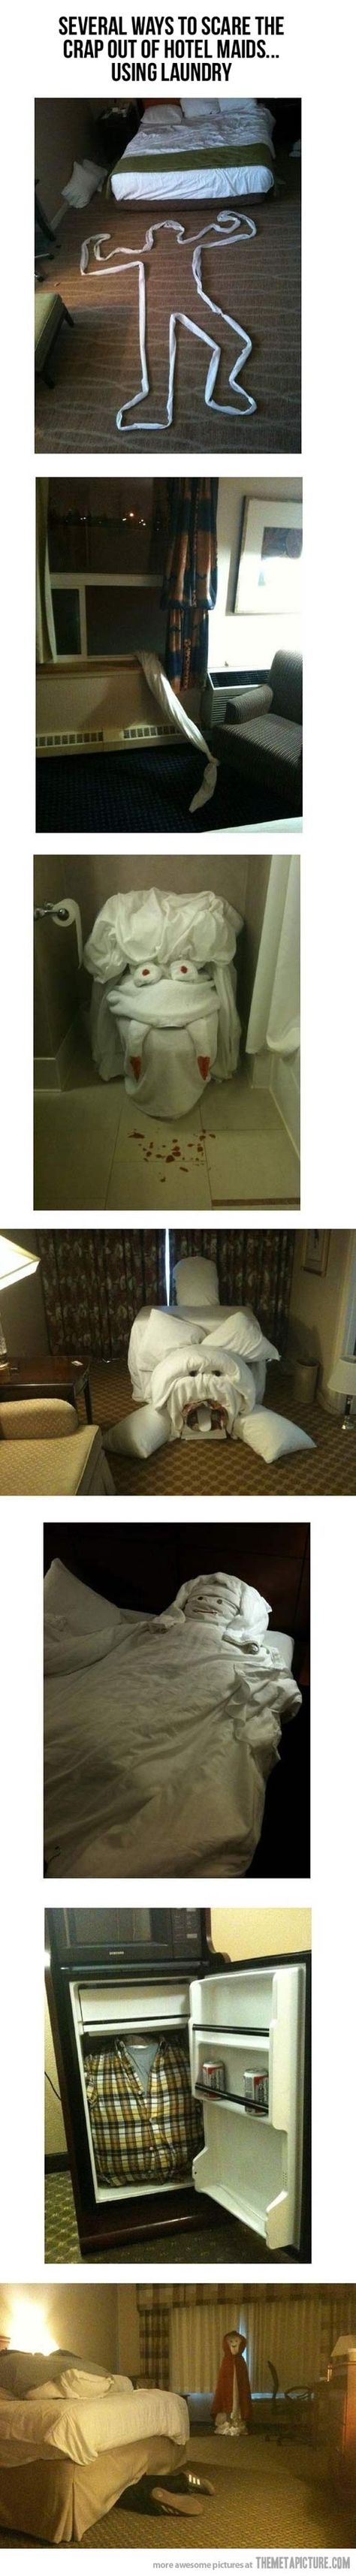 Before leaving your hotel room.. lol.. what the heck...